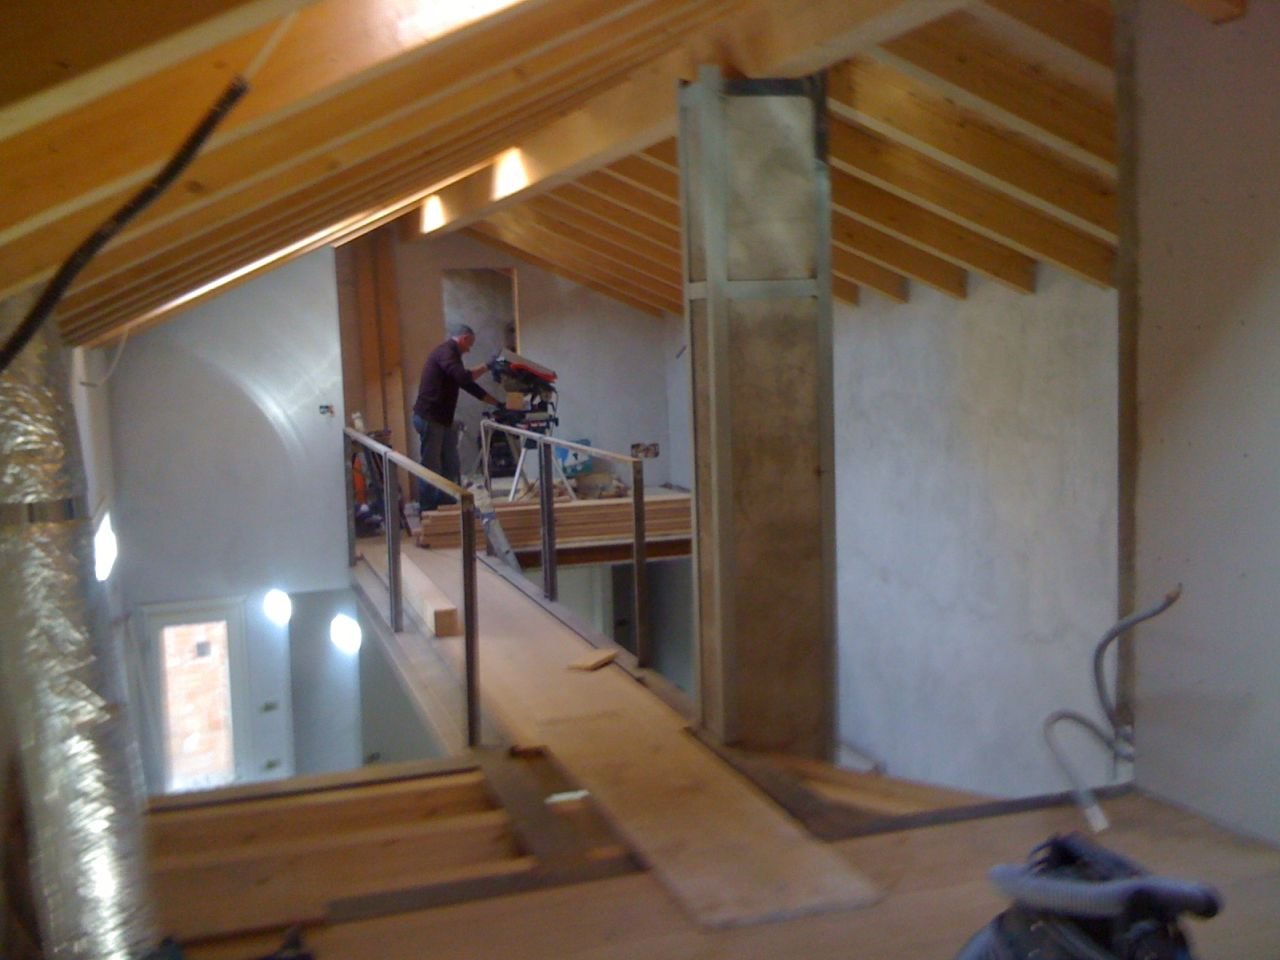 Erecting the walkway and the mezzanine floor for the attic bedrooms.